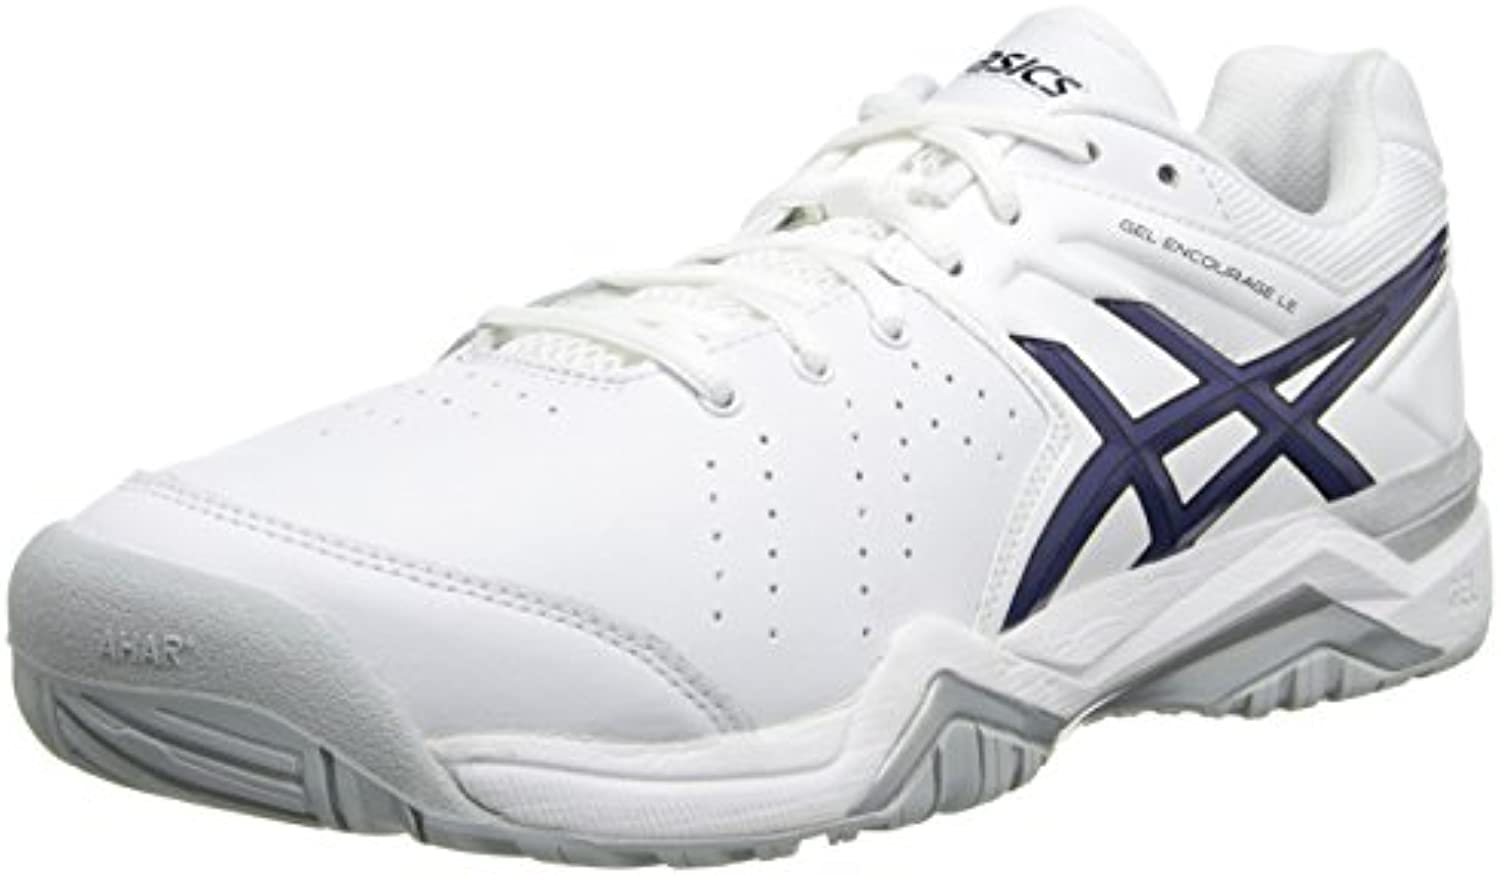 Asics Men's Gel Encourage LE Tennis Shoe